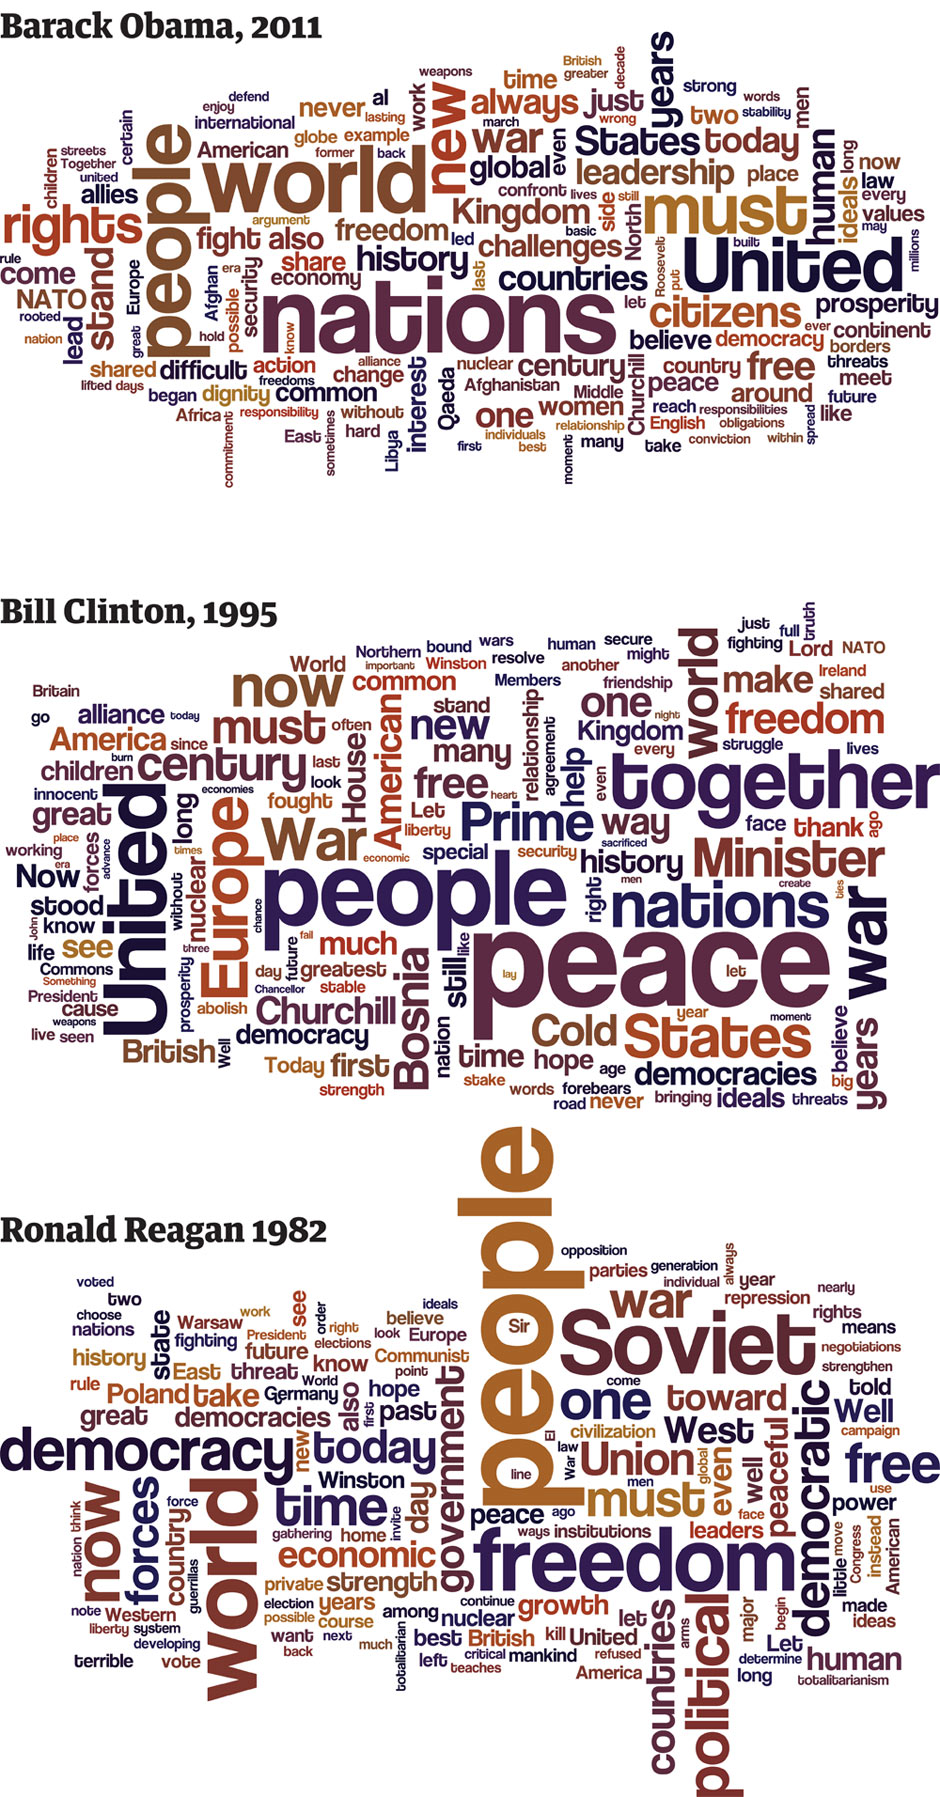 compare and contrasting bill clinton to ronald reagan Ronald reagan, the nation's 40th  who followed reagan, george hw bush and bill clinton,  gallupcom/poll/11887/ronald-reagan-from-peoples-perspective-gallup.